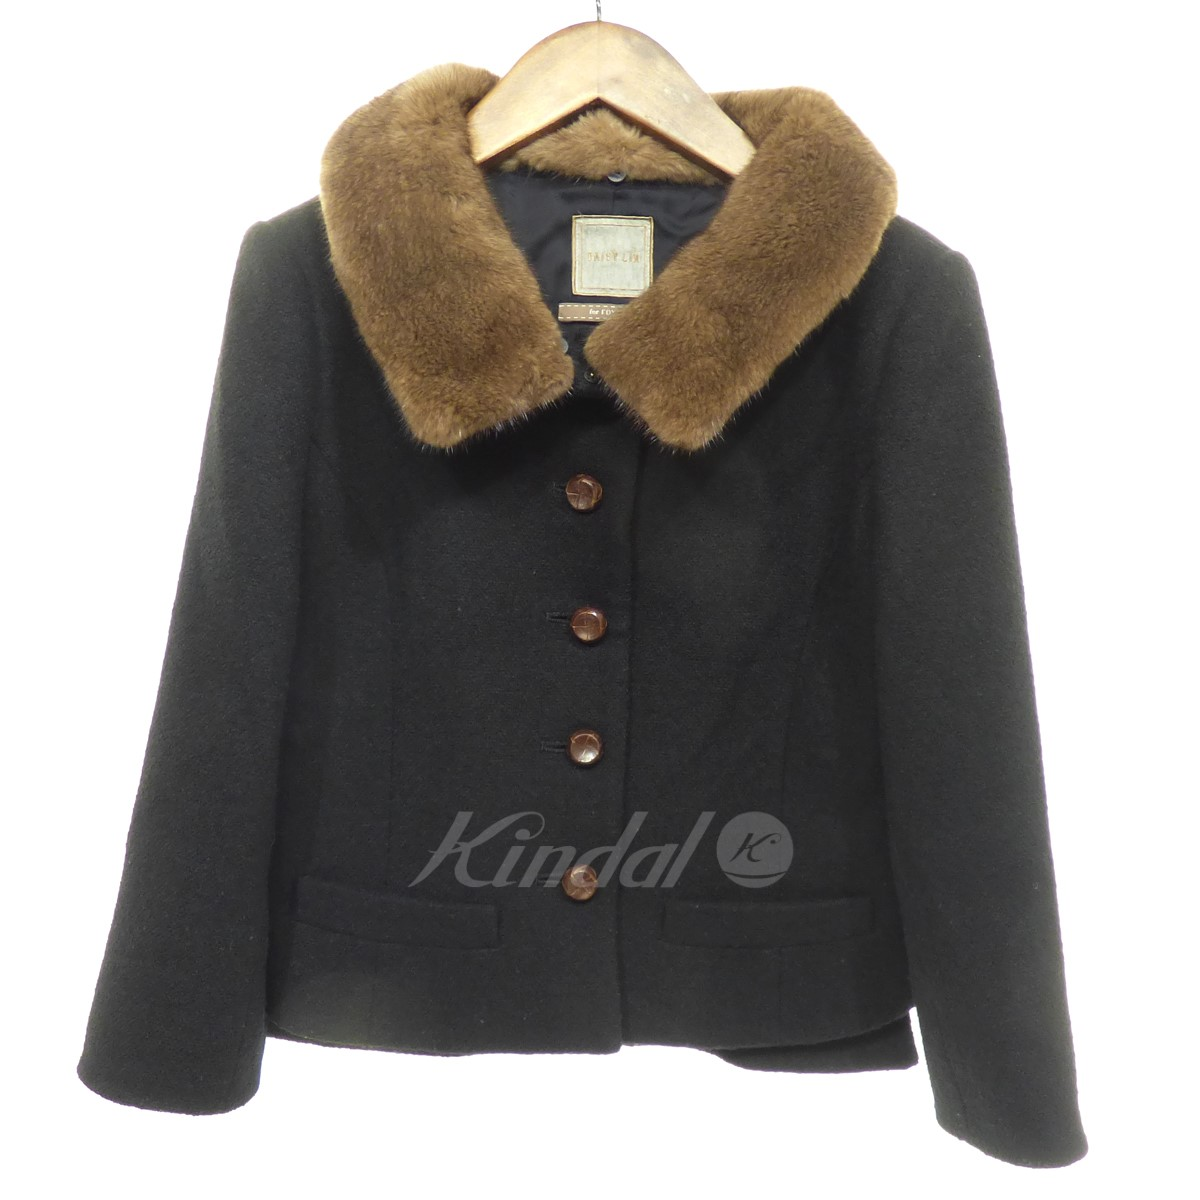 【中古】DAISY LIN for FOXEY JACKET VINTAGE CHIC 【送料無料】 【150907】 【KIND1551】